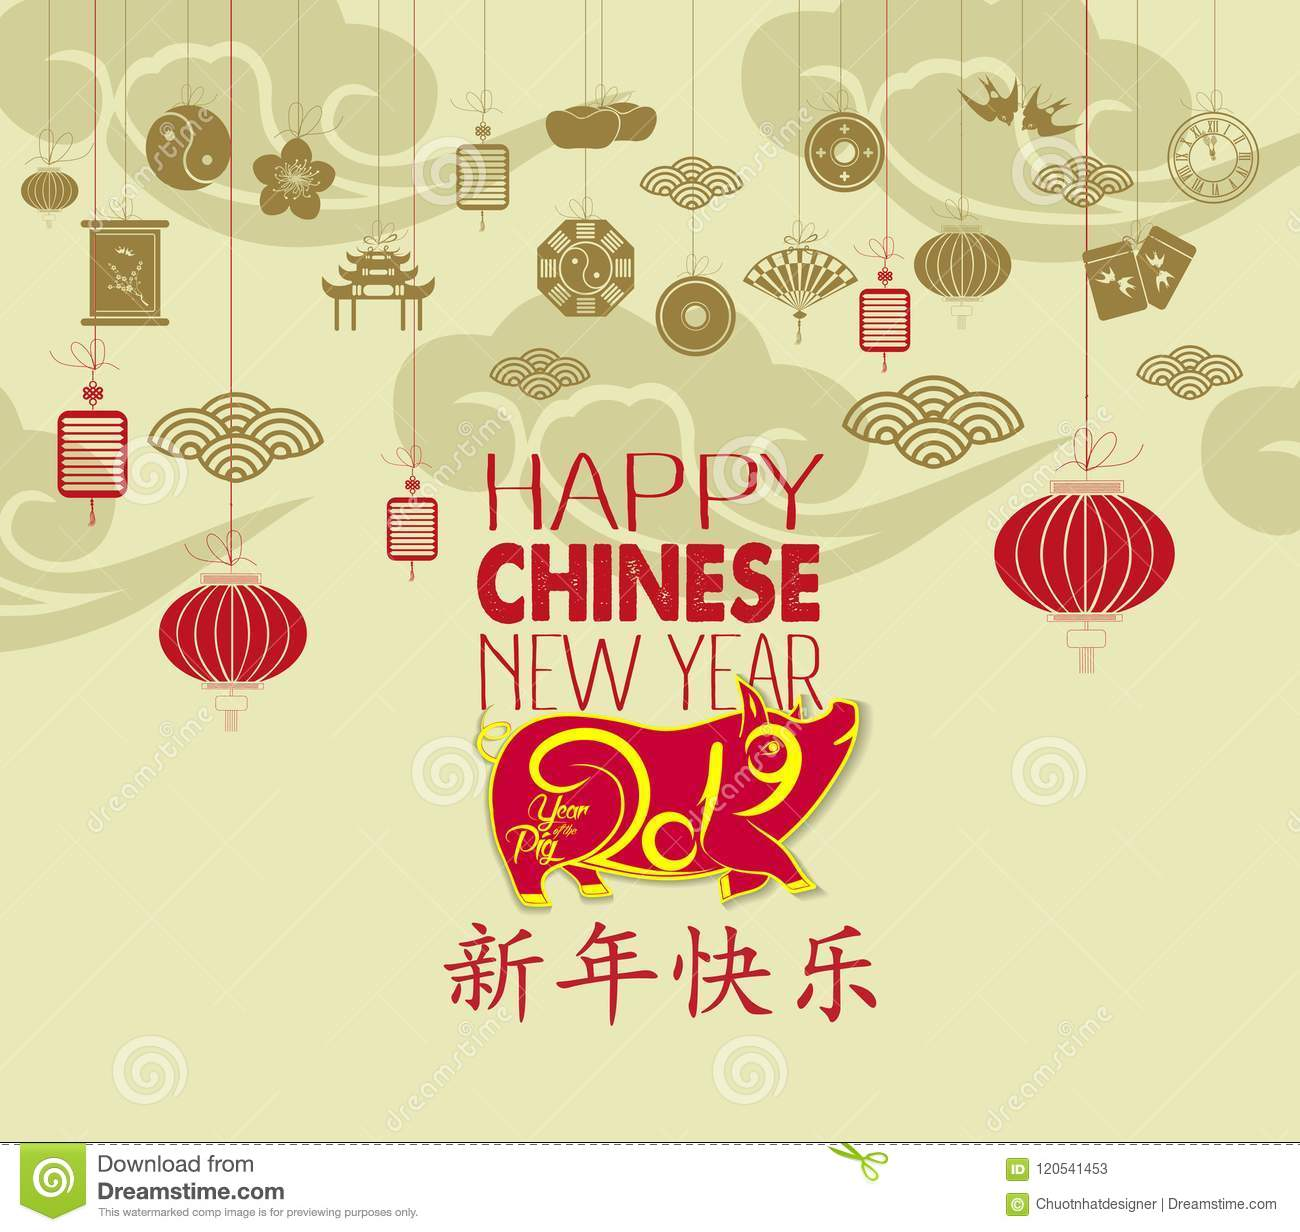 Happy Chinese New Year 2019 year of the pig. Chinese characters mean Happy New Year, wealthy, Zodiac sign for greetings card, flye